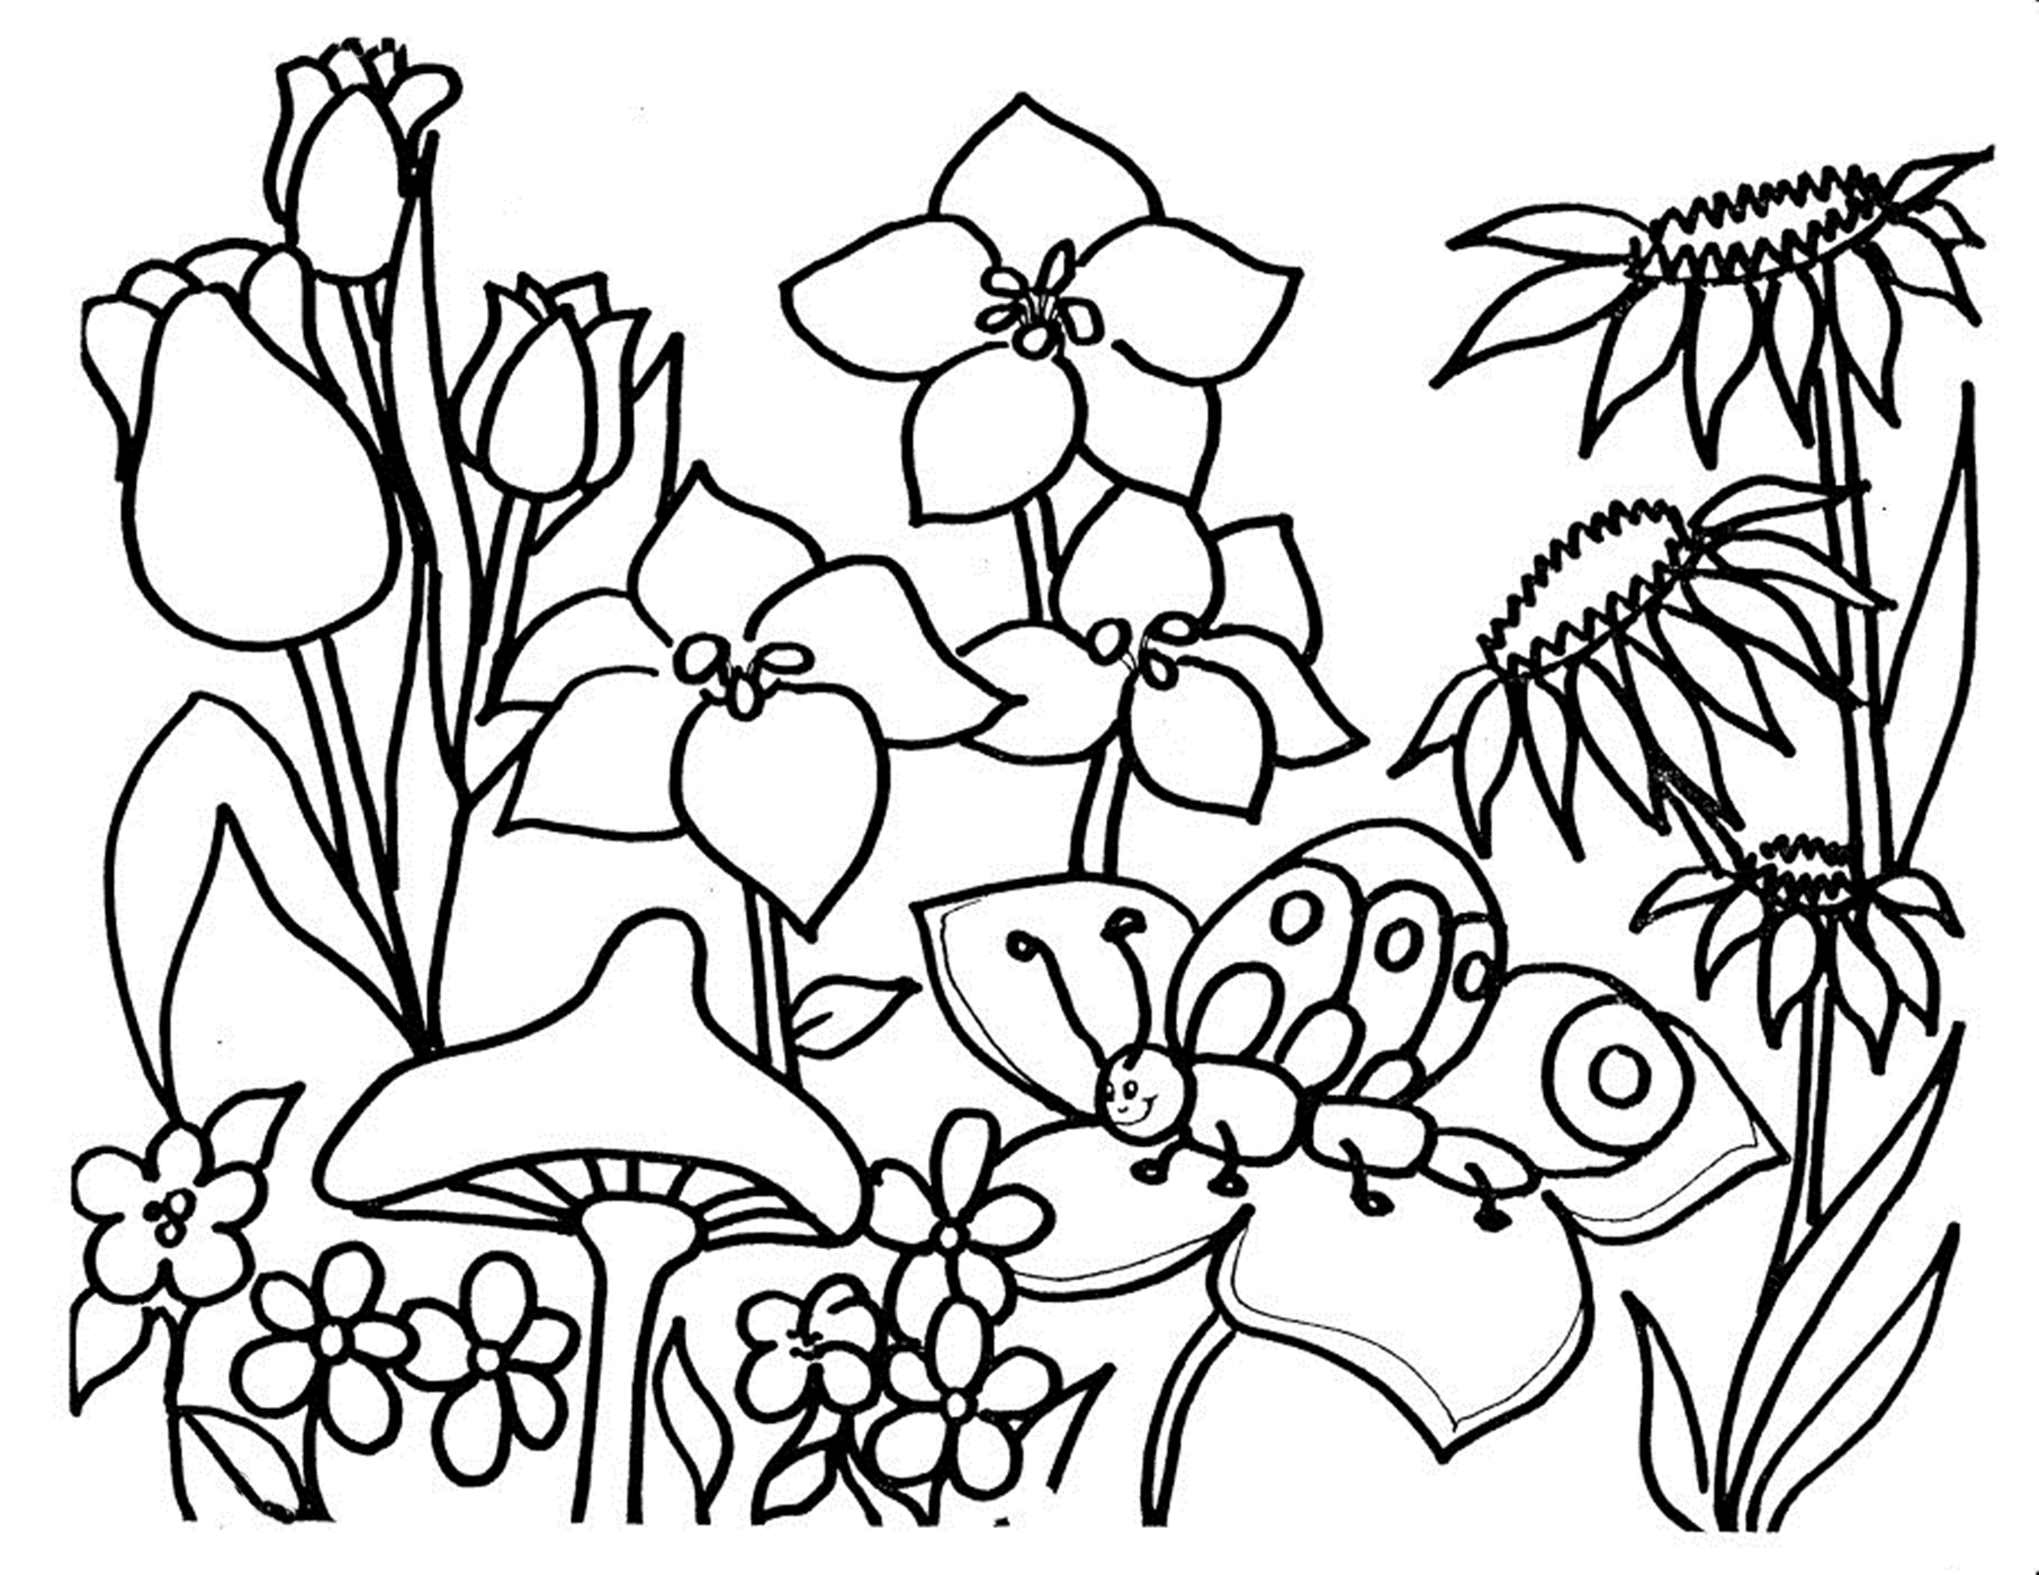 colouring flowers free printable flower coloring pages for kids best colouring flowers 1 1